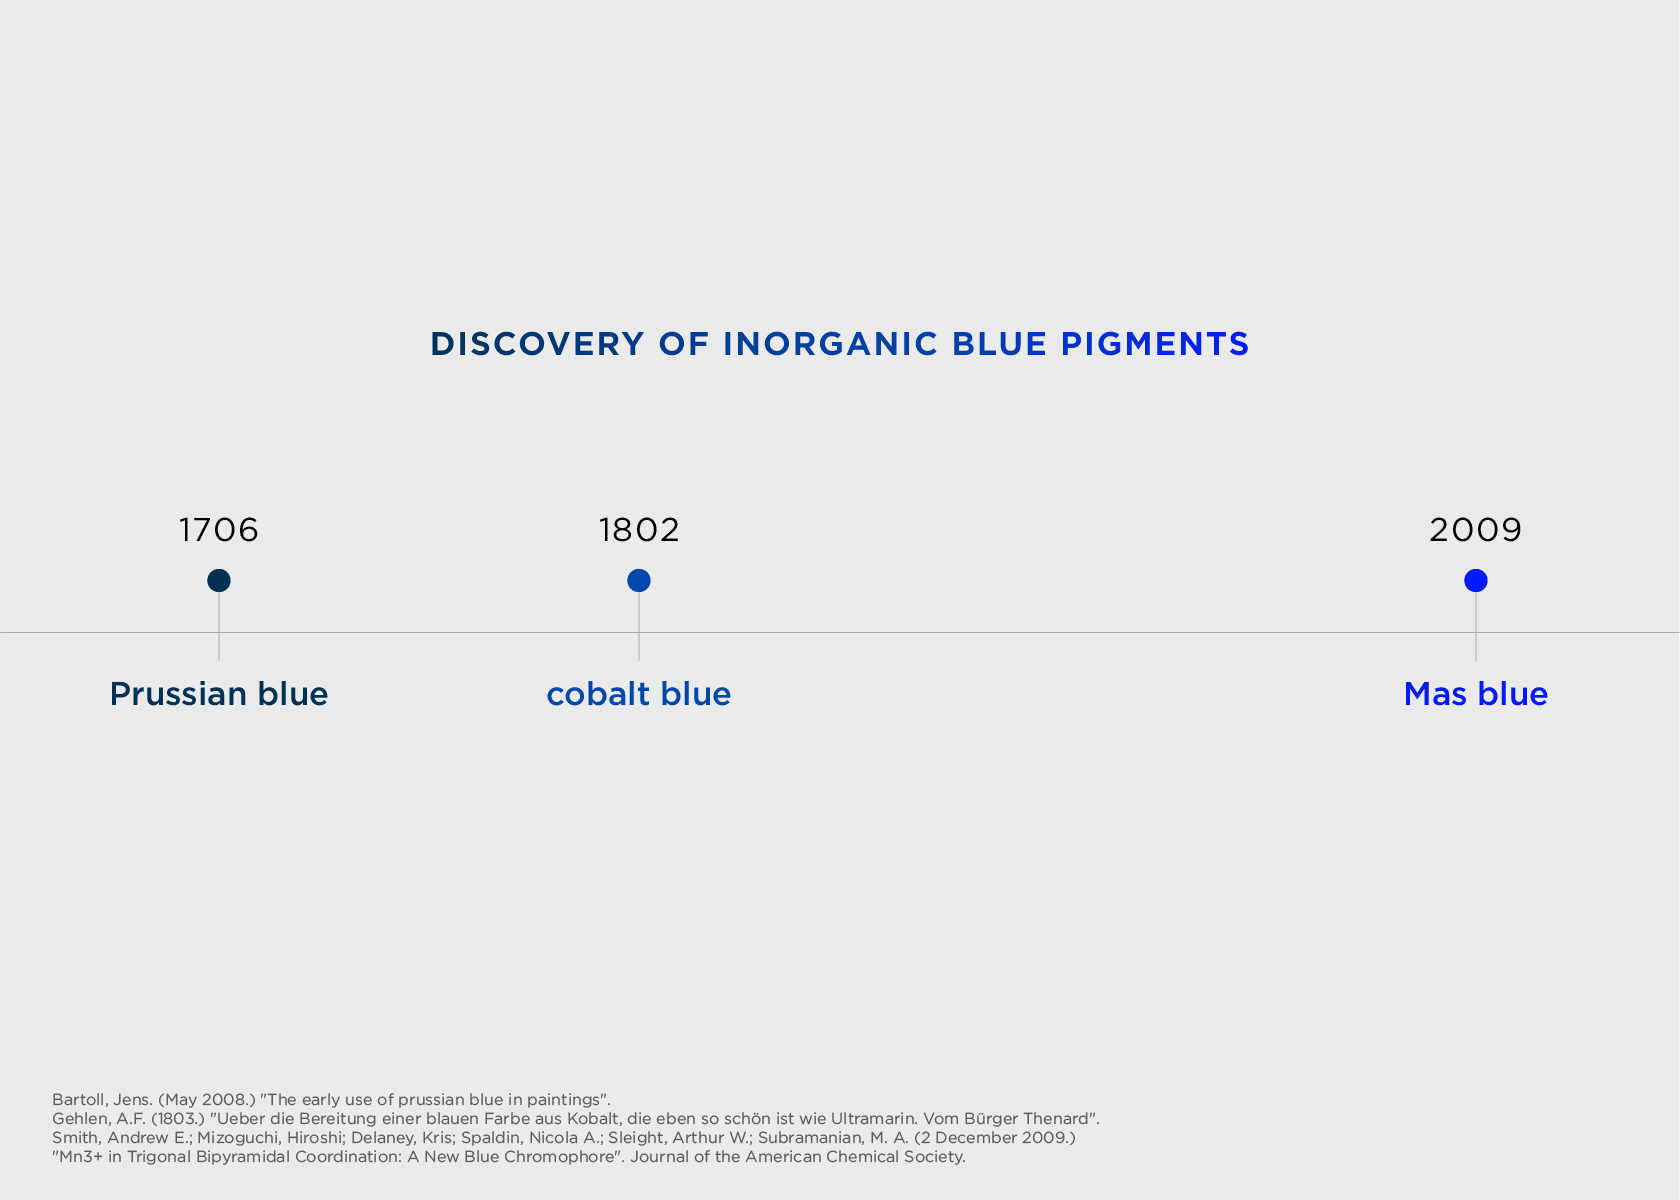 Mas blue was discovered in 2009, more than 100 years after cobalt blue.